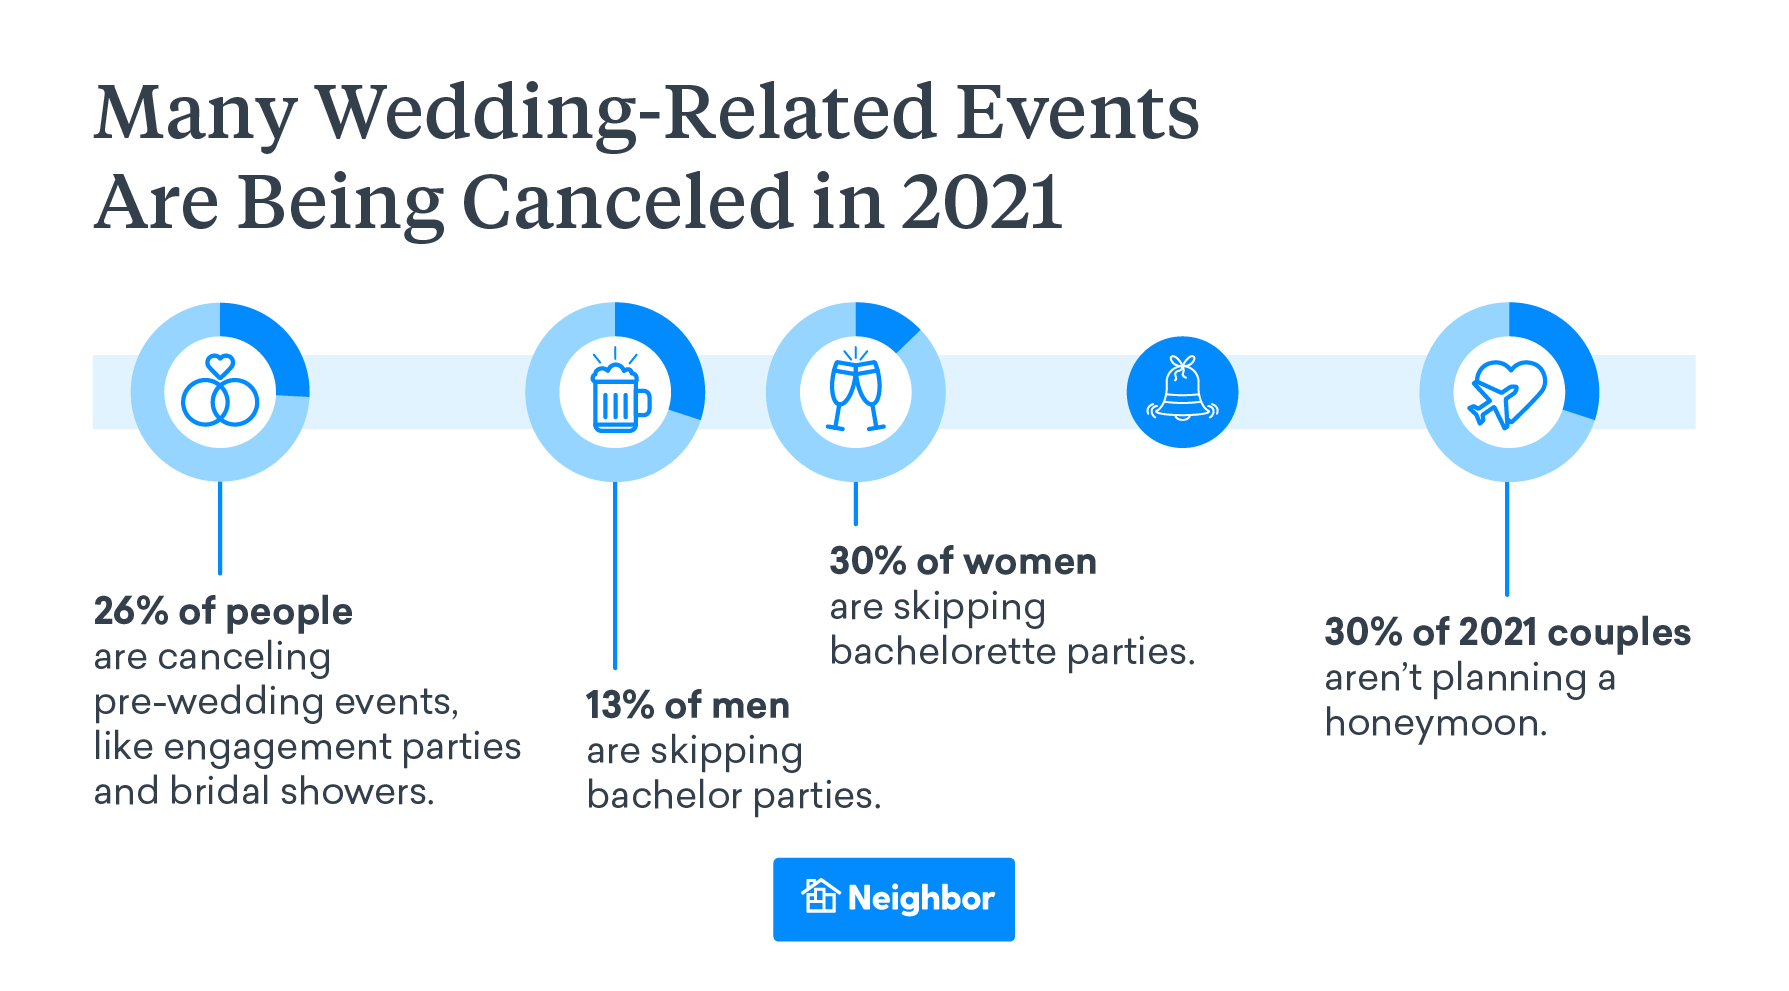 Many Wedding-Related Events Are Being Canceled in 2021